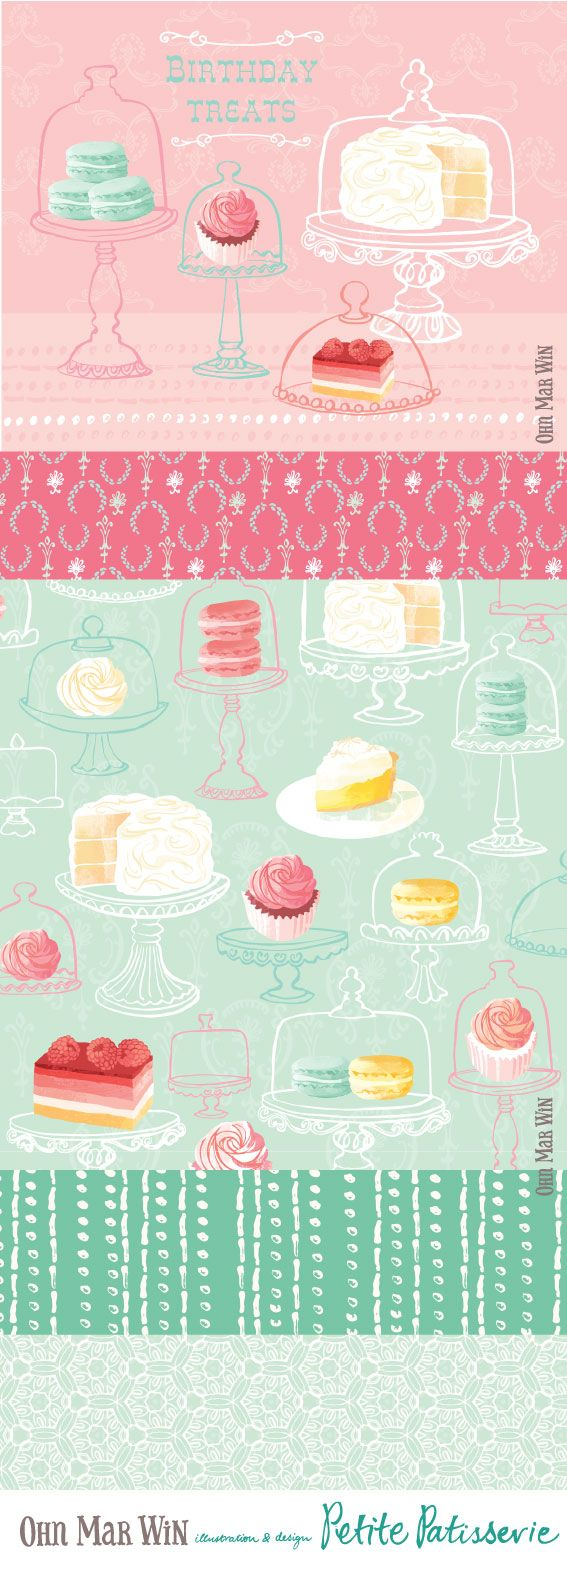 Petite-Patisserie Ohn Mar Win Food illustration surface pattern cakes macaroons cupcakes